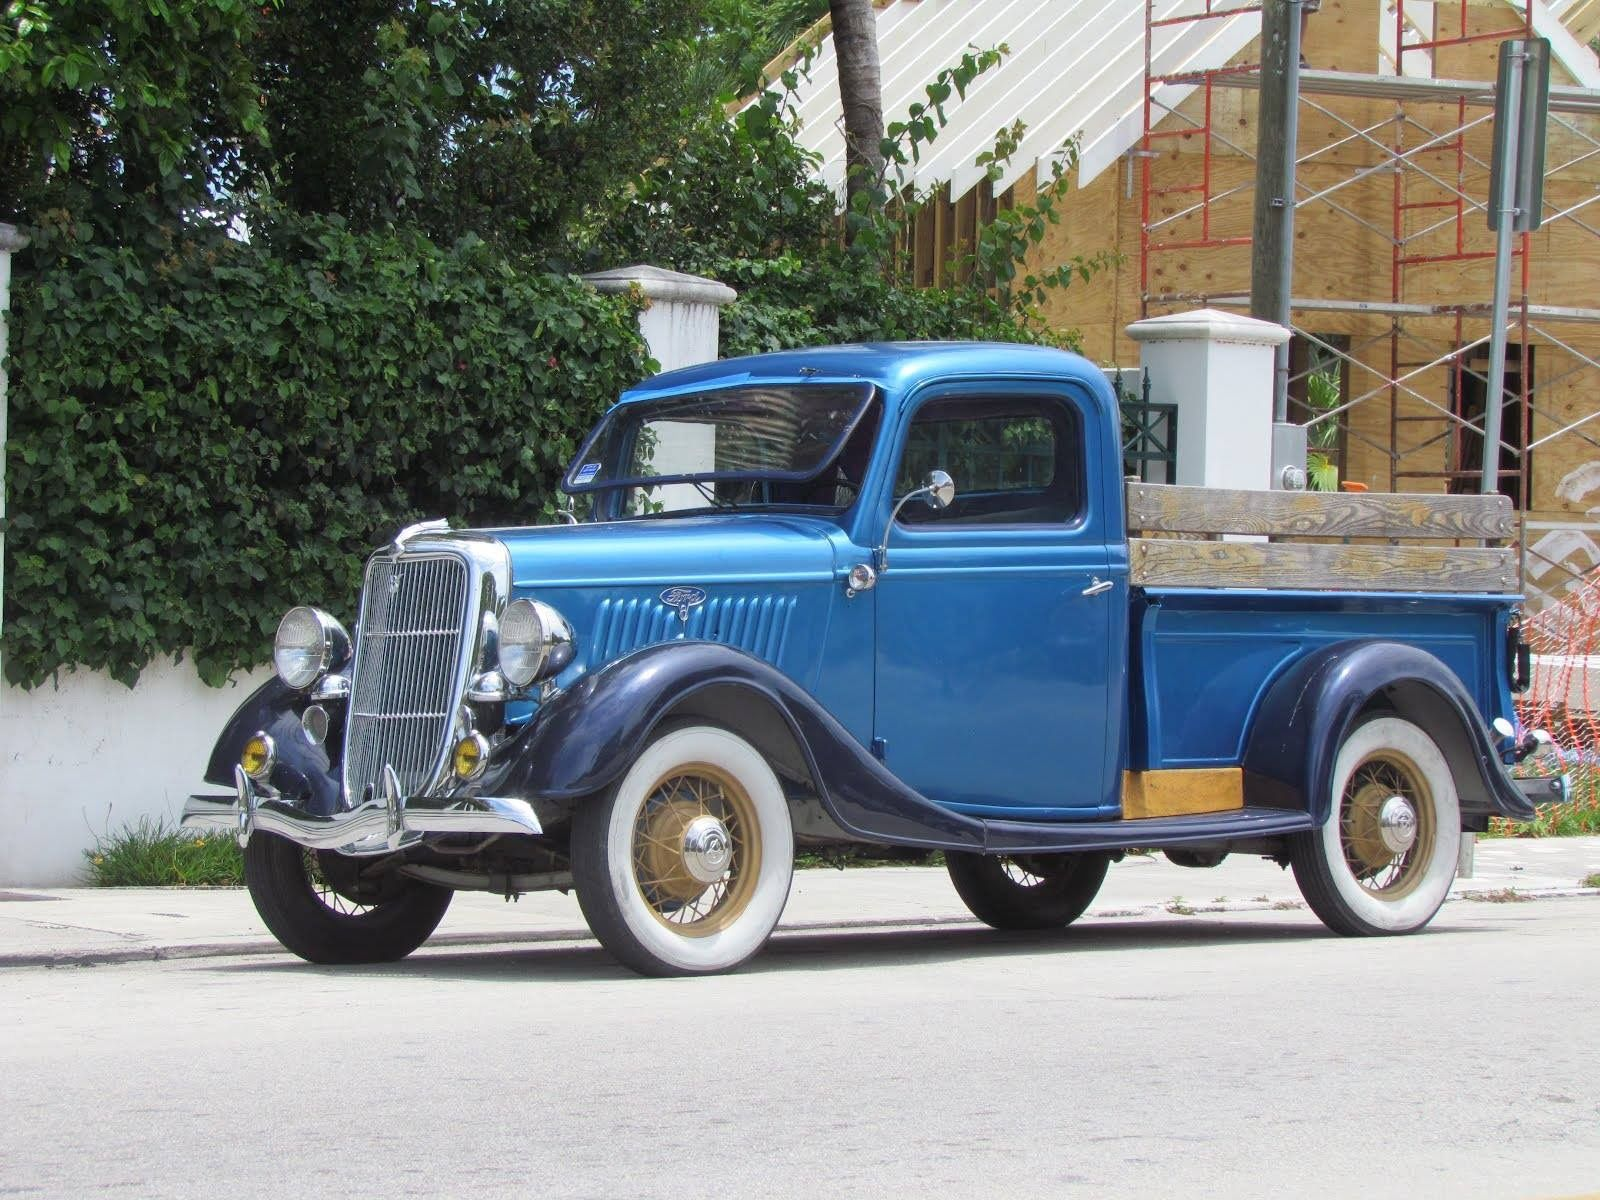 Pin by Herb Jure on Old trucks | Pinterest